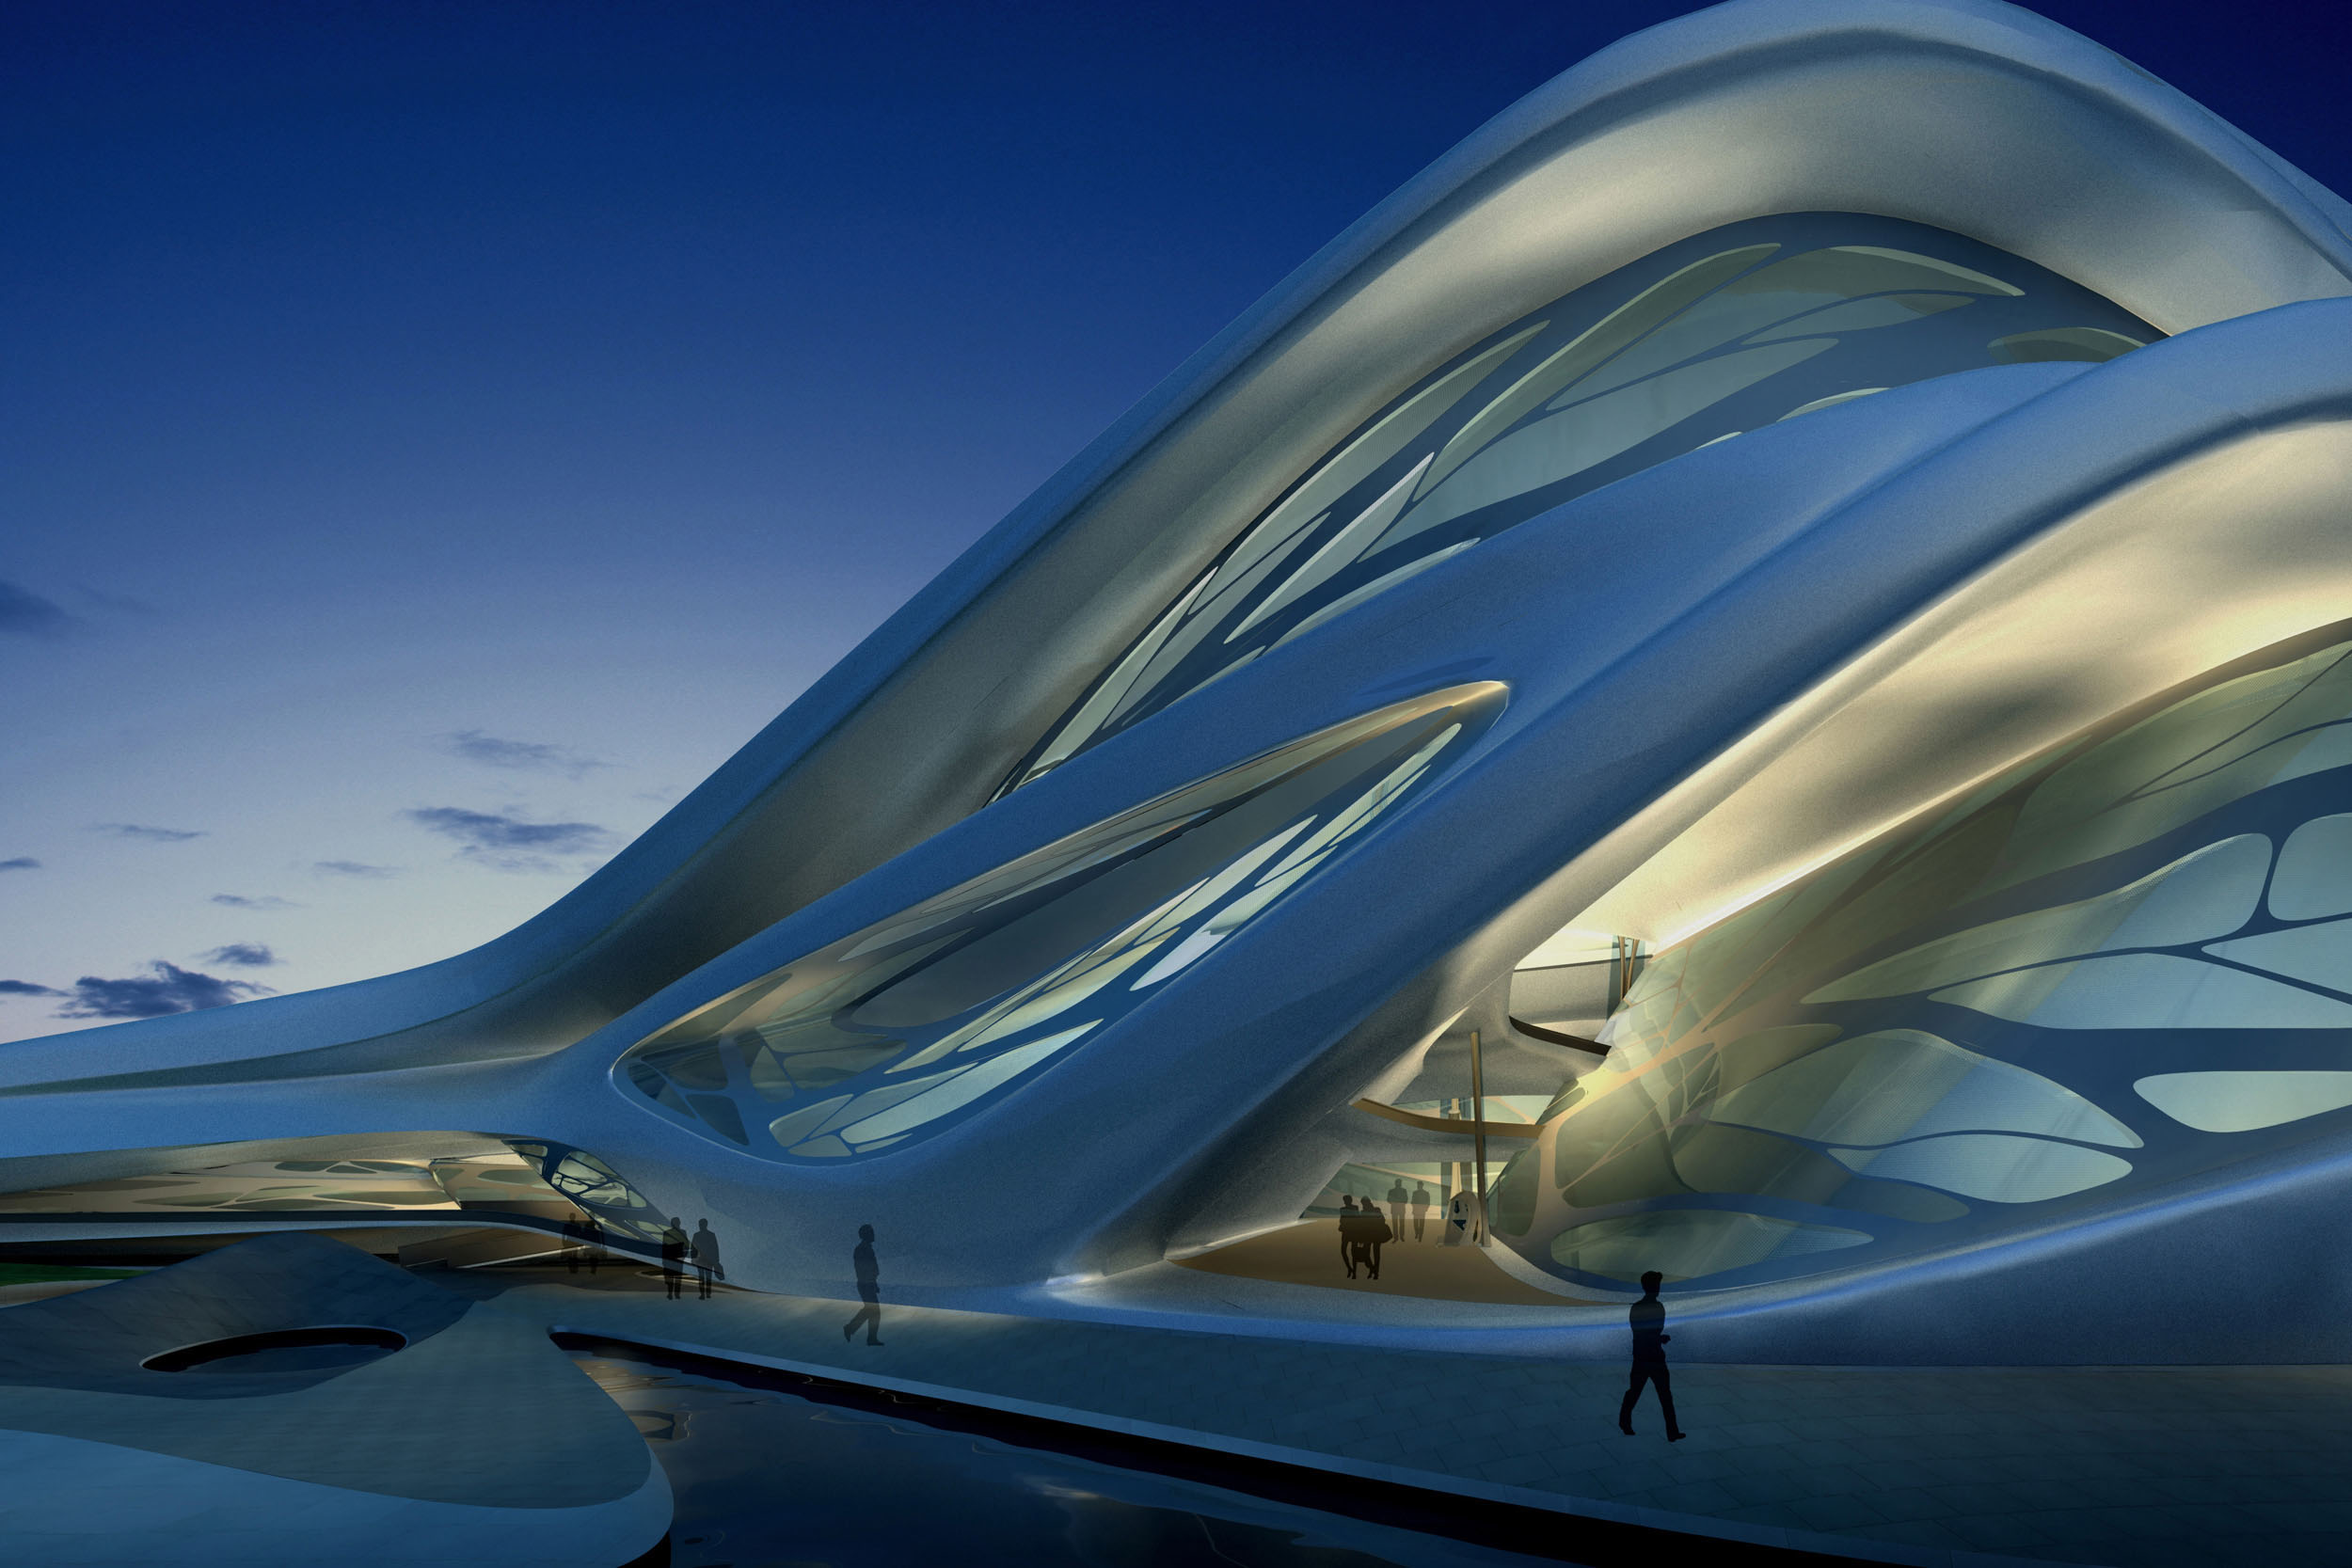 Abu dhabi performing arts center zaha hadid architects for Architecture zaha hadid